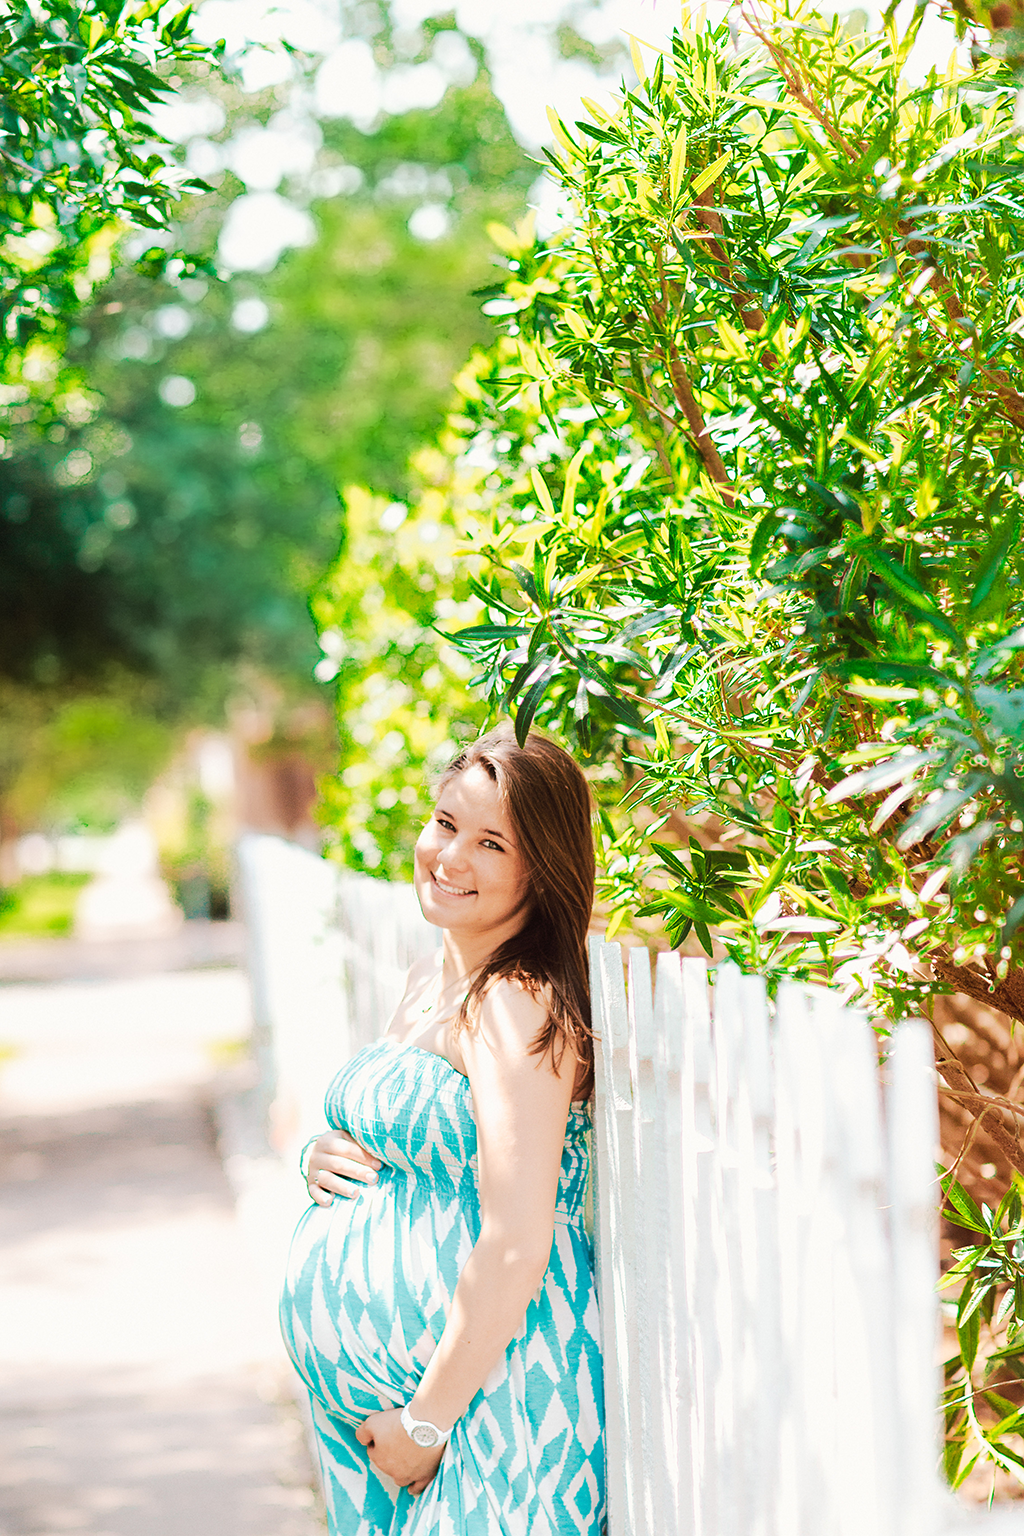 Deedra-Yeargan-Houston-Maternity-0333_Kristen-Curette-Photography-Edit